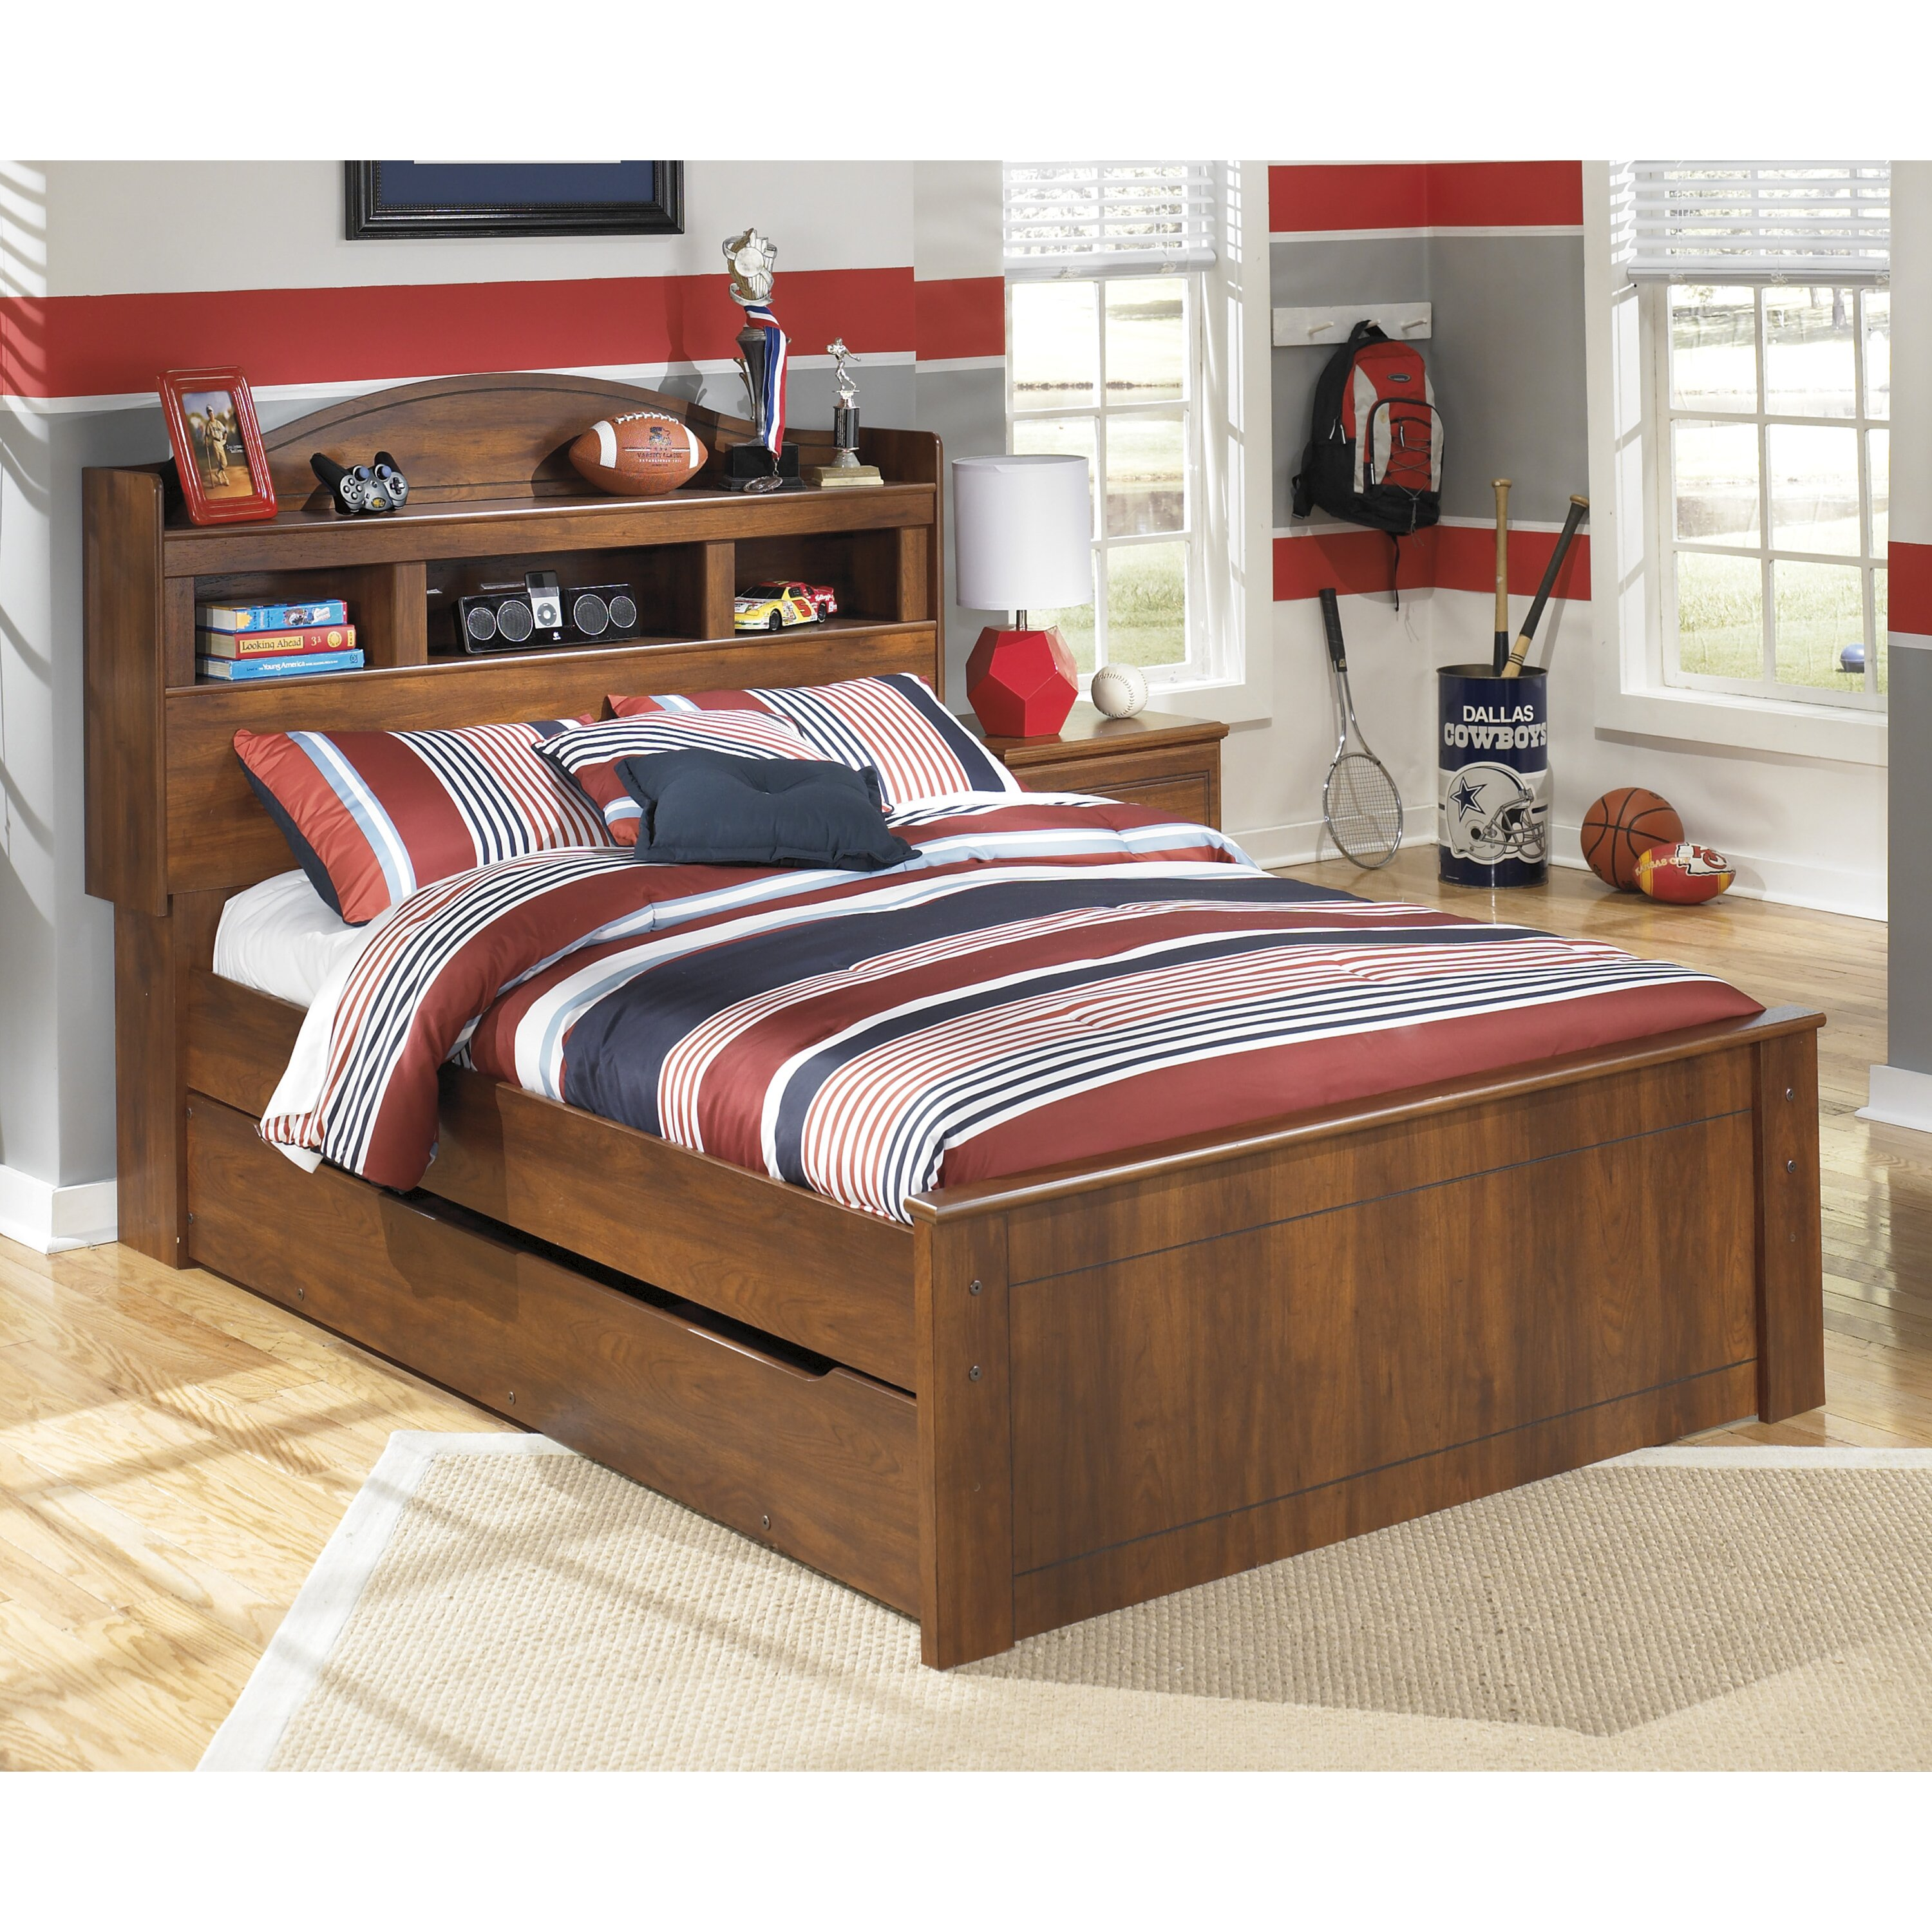 Signature Design By Ashley Barchan Panel Bed Reviews